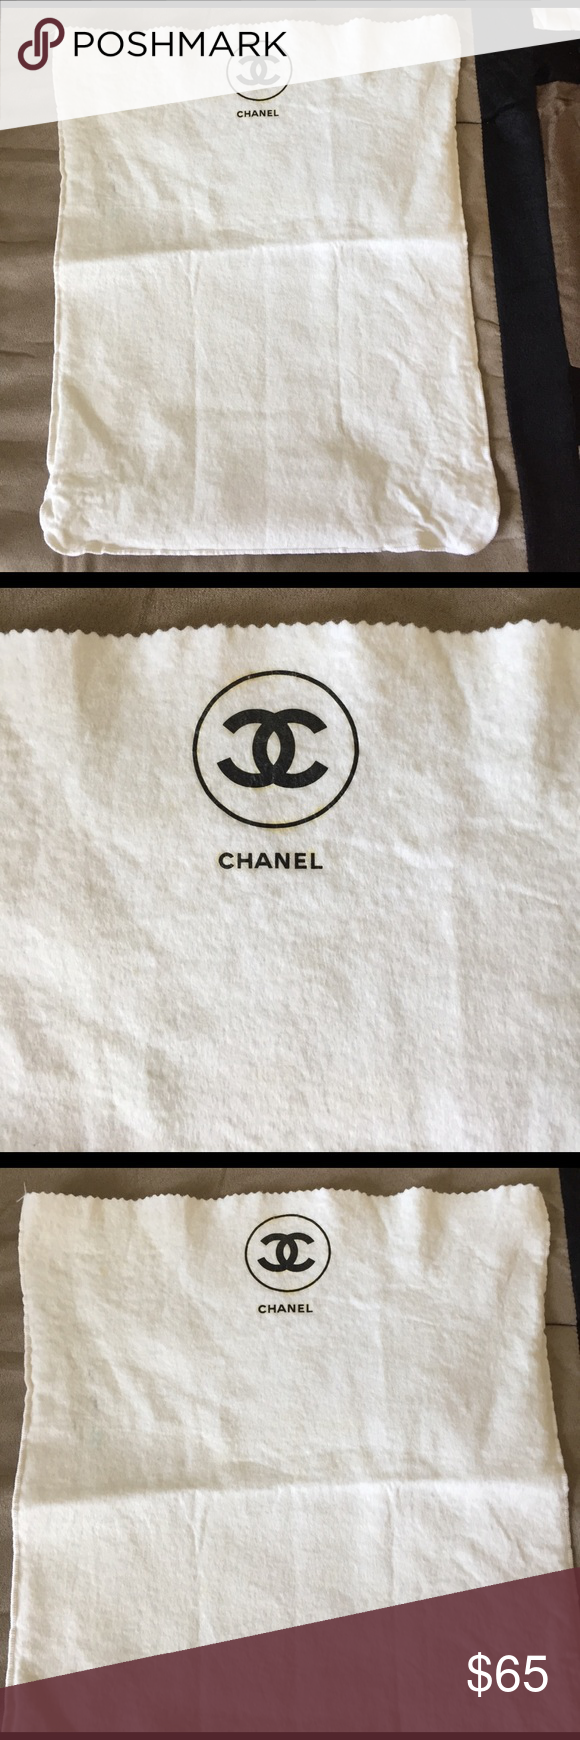 e731a2f82391 Authentic Large VINTAGE CHANEL dust bag Excellent condition. A few dirt  marks shown in photos CHANEL Bags Shoulder Bags